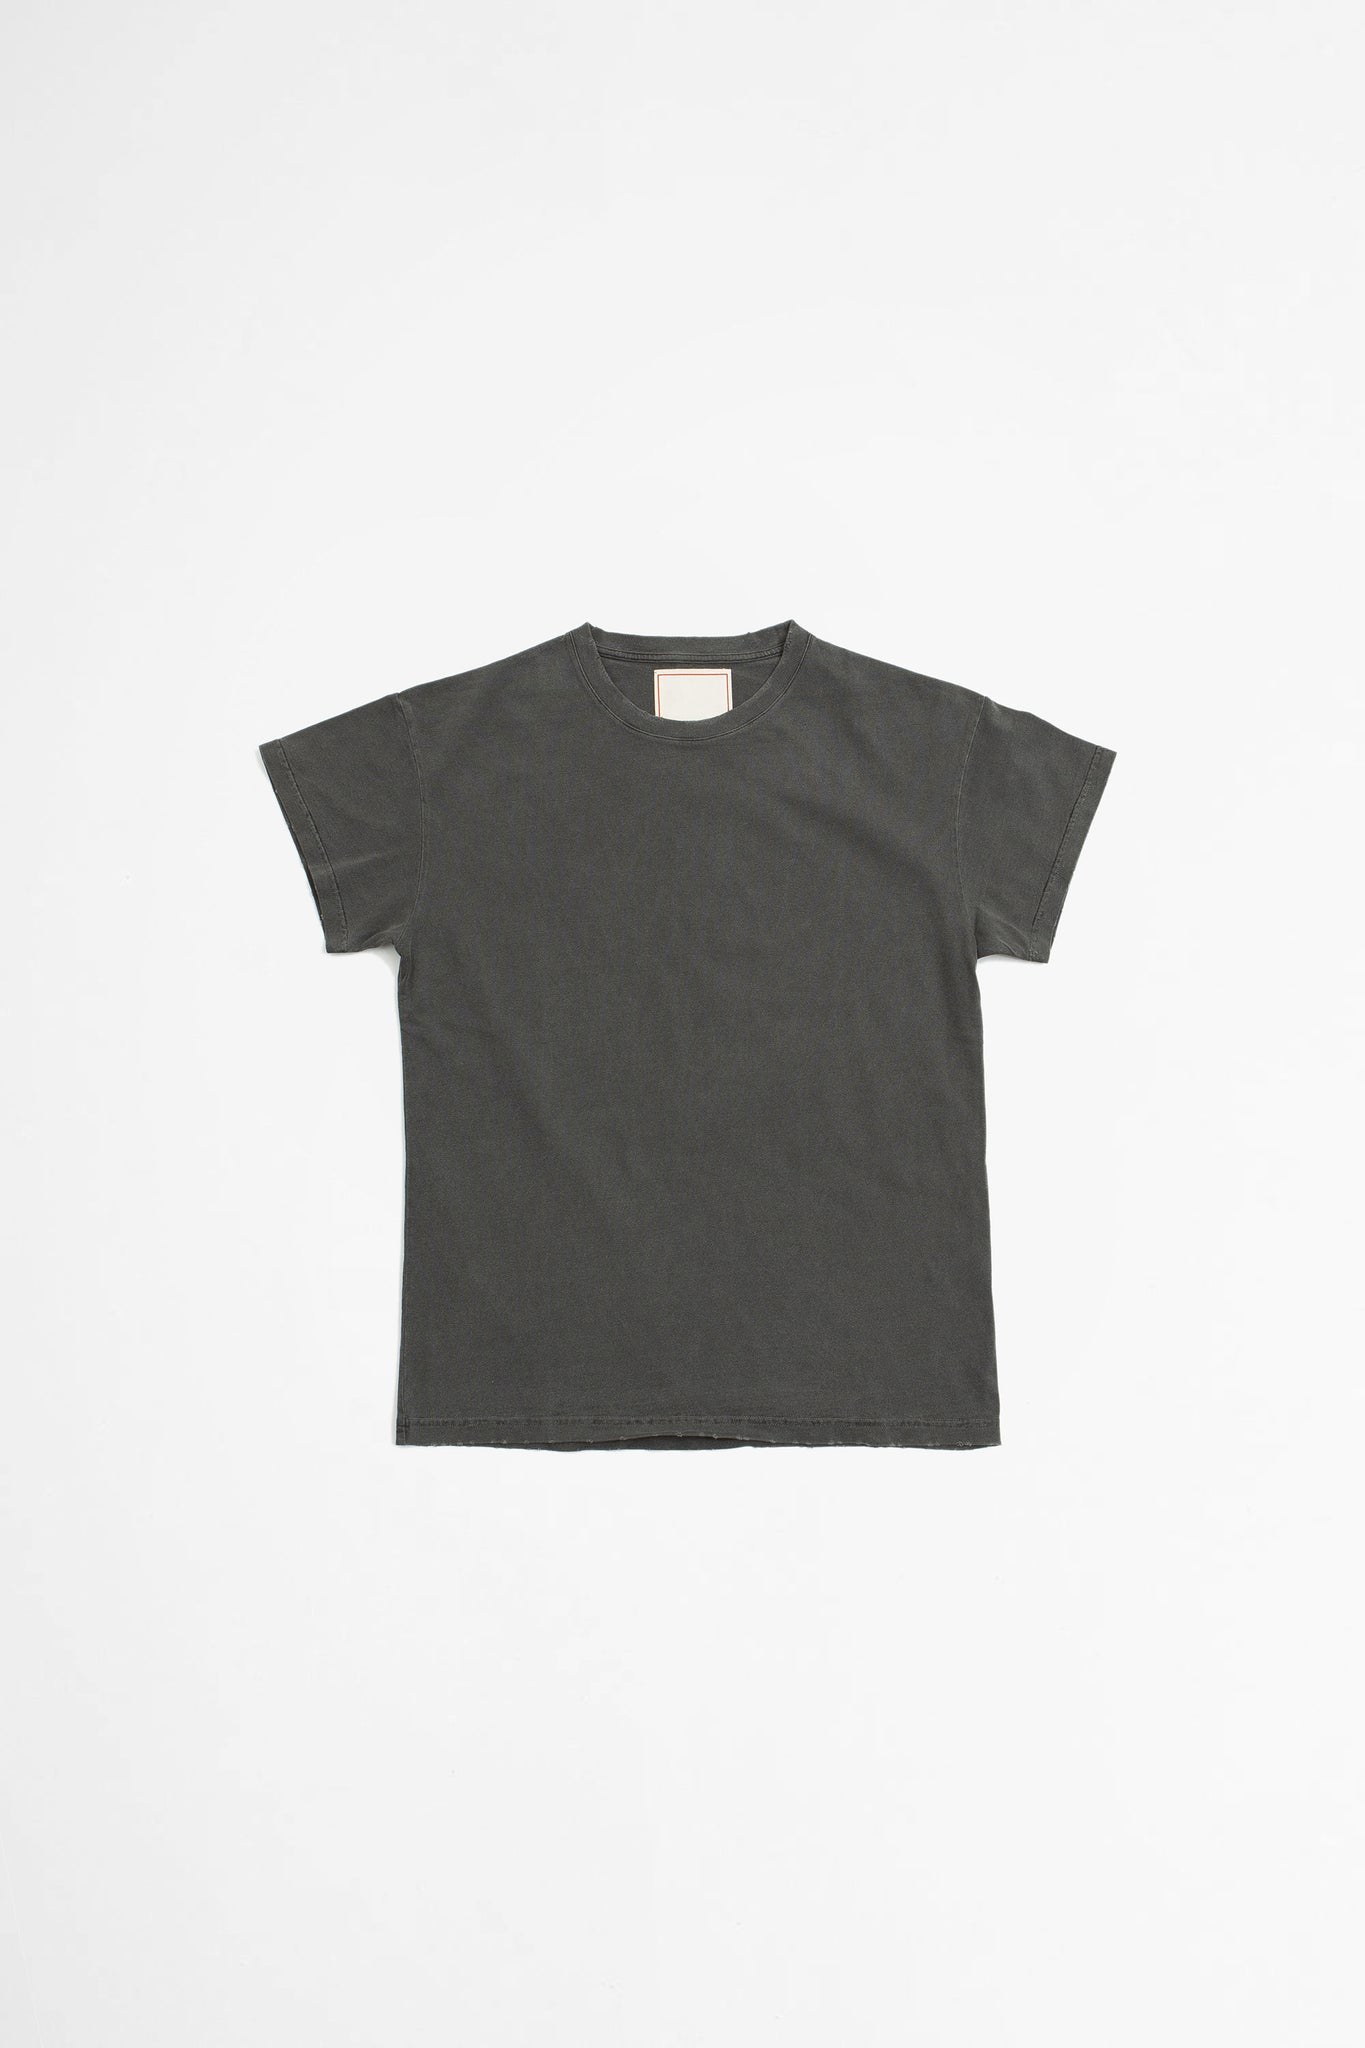 Marcel 200 distressed tee black used